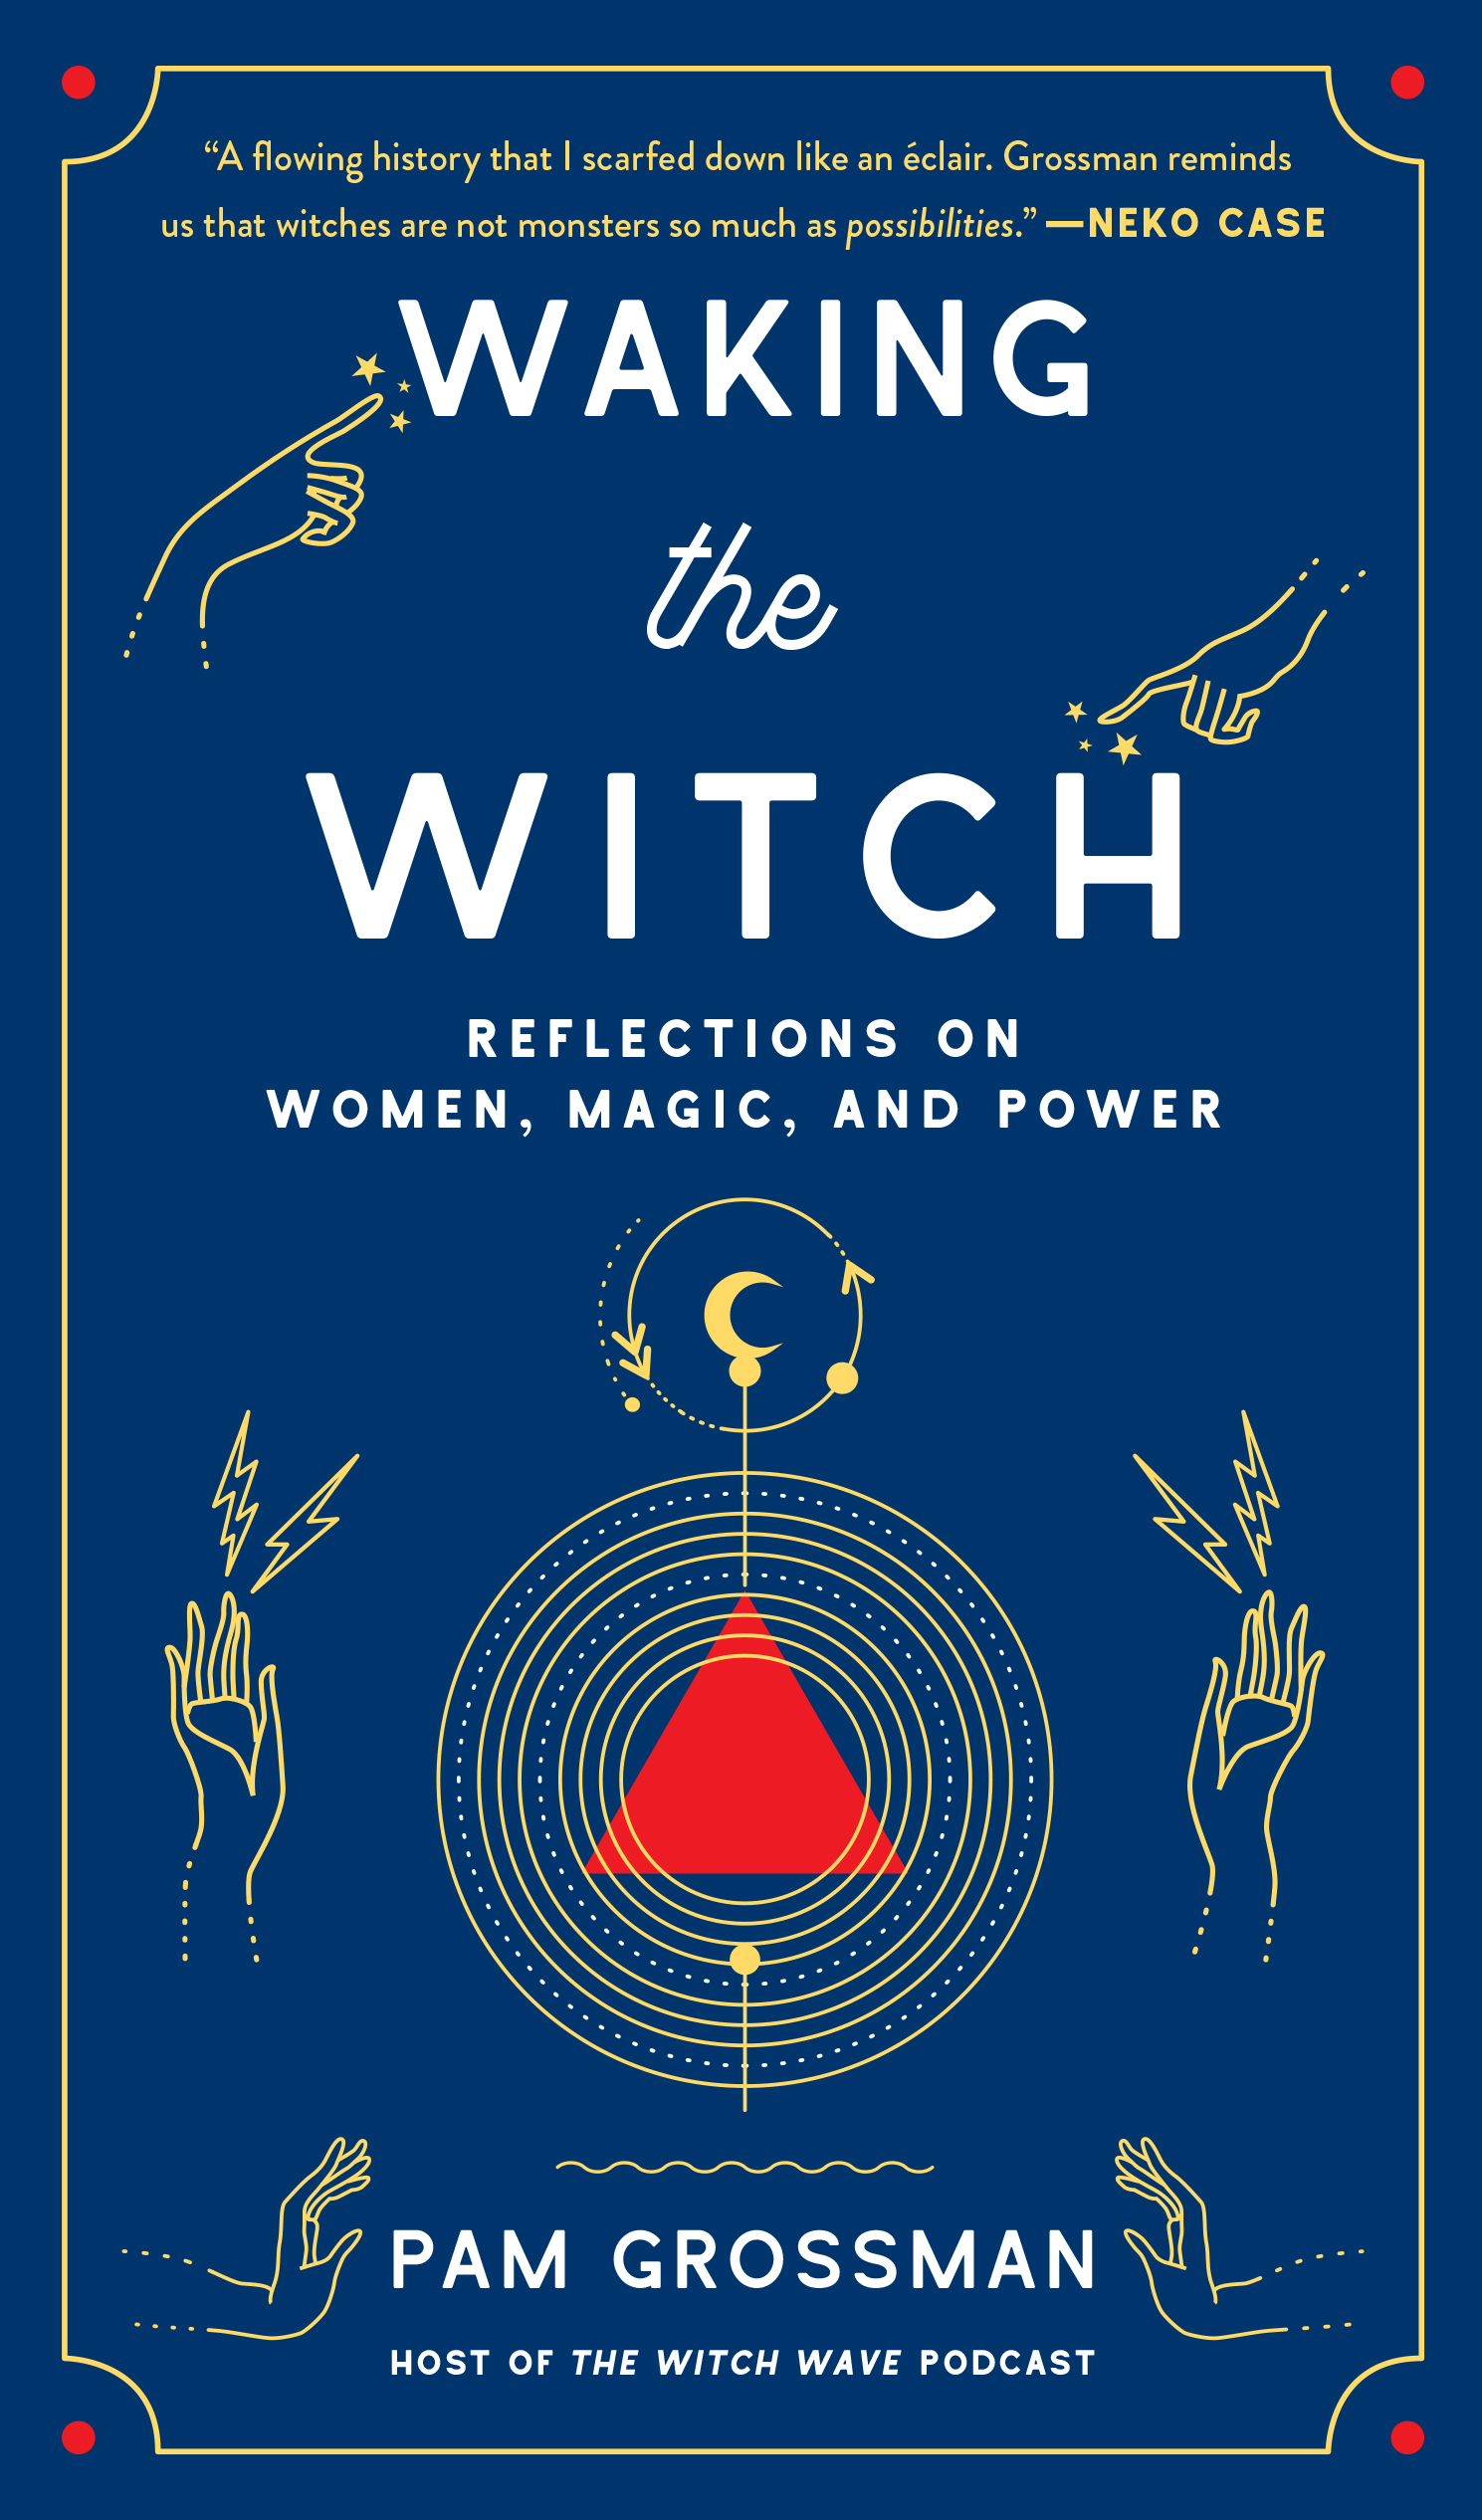 WAKING THE WITCH: REFLECTIONS ON WOMEN, MAGIC, AND POWER - Gallery Books/Simon & SchusterJune 4, 2019ORDER HEREA whip-smart and illuminating exploration of the world's fascination with witches from podcast host and practicing witch Pam Grossman (The Witch Wave), who delves deeply into why witches have intrigued us for centuries and why they're more relevant now than ever. When you think of a witch, what do you picture? Pointy black hat, maybe a broomstick. But witches in various guises have been with us for millennia. In Waking the Witch, Pam Grossman explores the cultural and historical impact of the world's most magical icon. From the idea of the femme fatale in league with the devil in early modern Europe and Salem, to the bewitching pop culture archetypes in Buffy the Vampire Slayer, Sabrina the Teenage Witch, and Harry Potter; from the spooky ladies in fairy tales and horror films to the rise of feminist covens and contemporary witchcraft, witches reflect the power and potential of women.In this fascinating read that is part cultural analysis, part memoir, Pam opens up about her own journey on the path to witchcraft, and how her personal embrace of the witch helped her find strength, self-empowerment, and a deeper purpose. A comprehensive meditation on one of the most mysterious and captivating figures of all time, Waking the Witch celebrates witches past, present, and future, and reveals the critical role they have played—and will continue to play—in shaping the world as we know it.